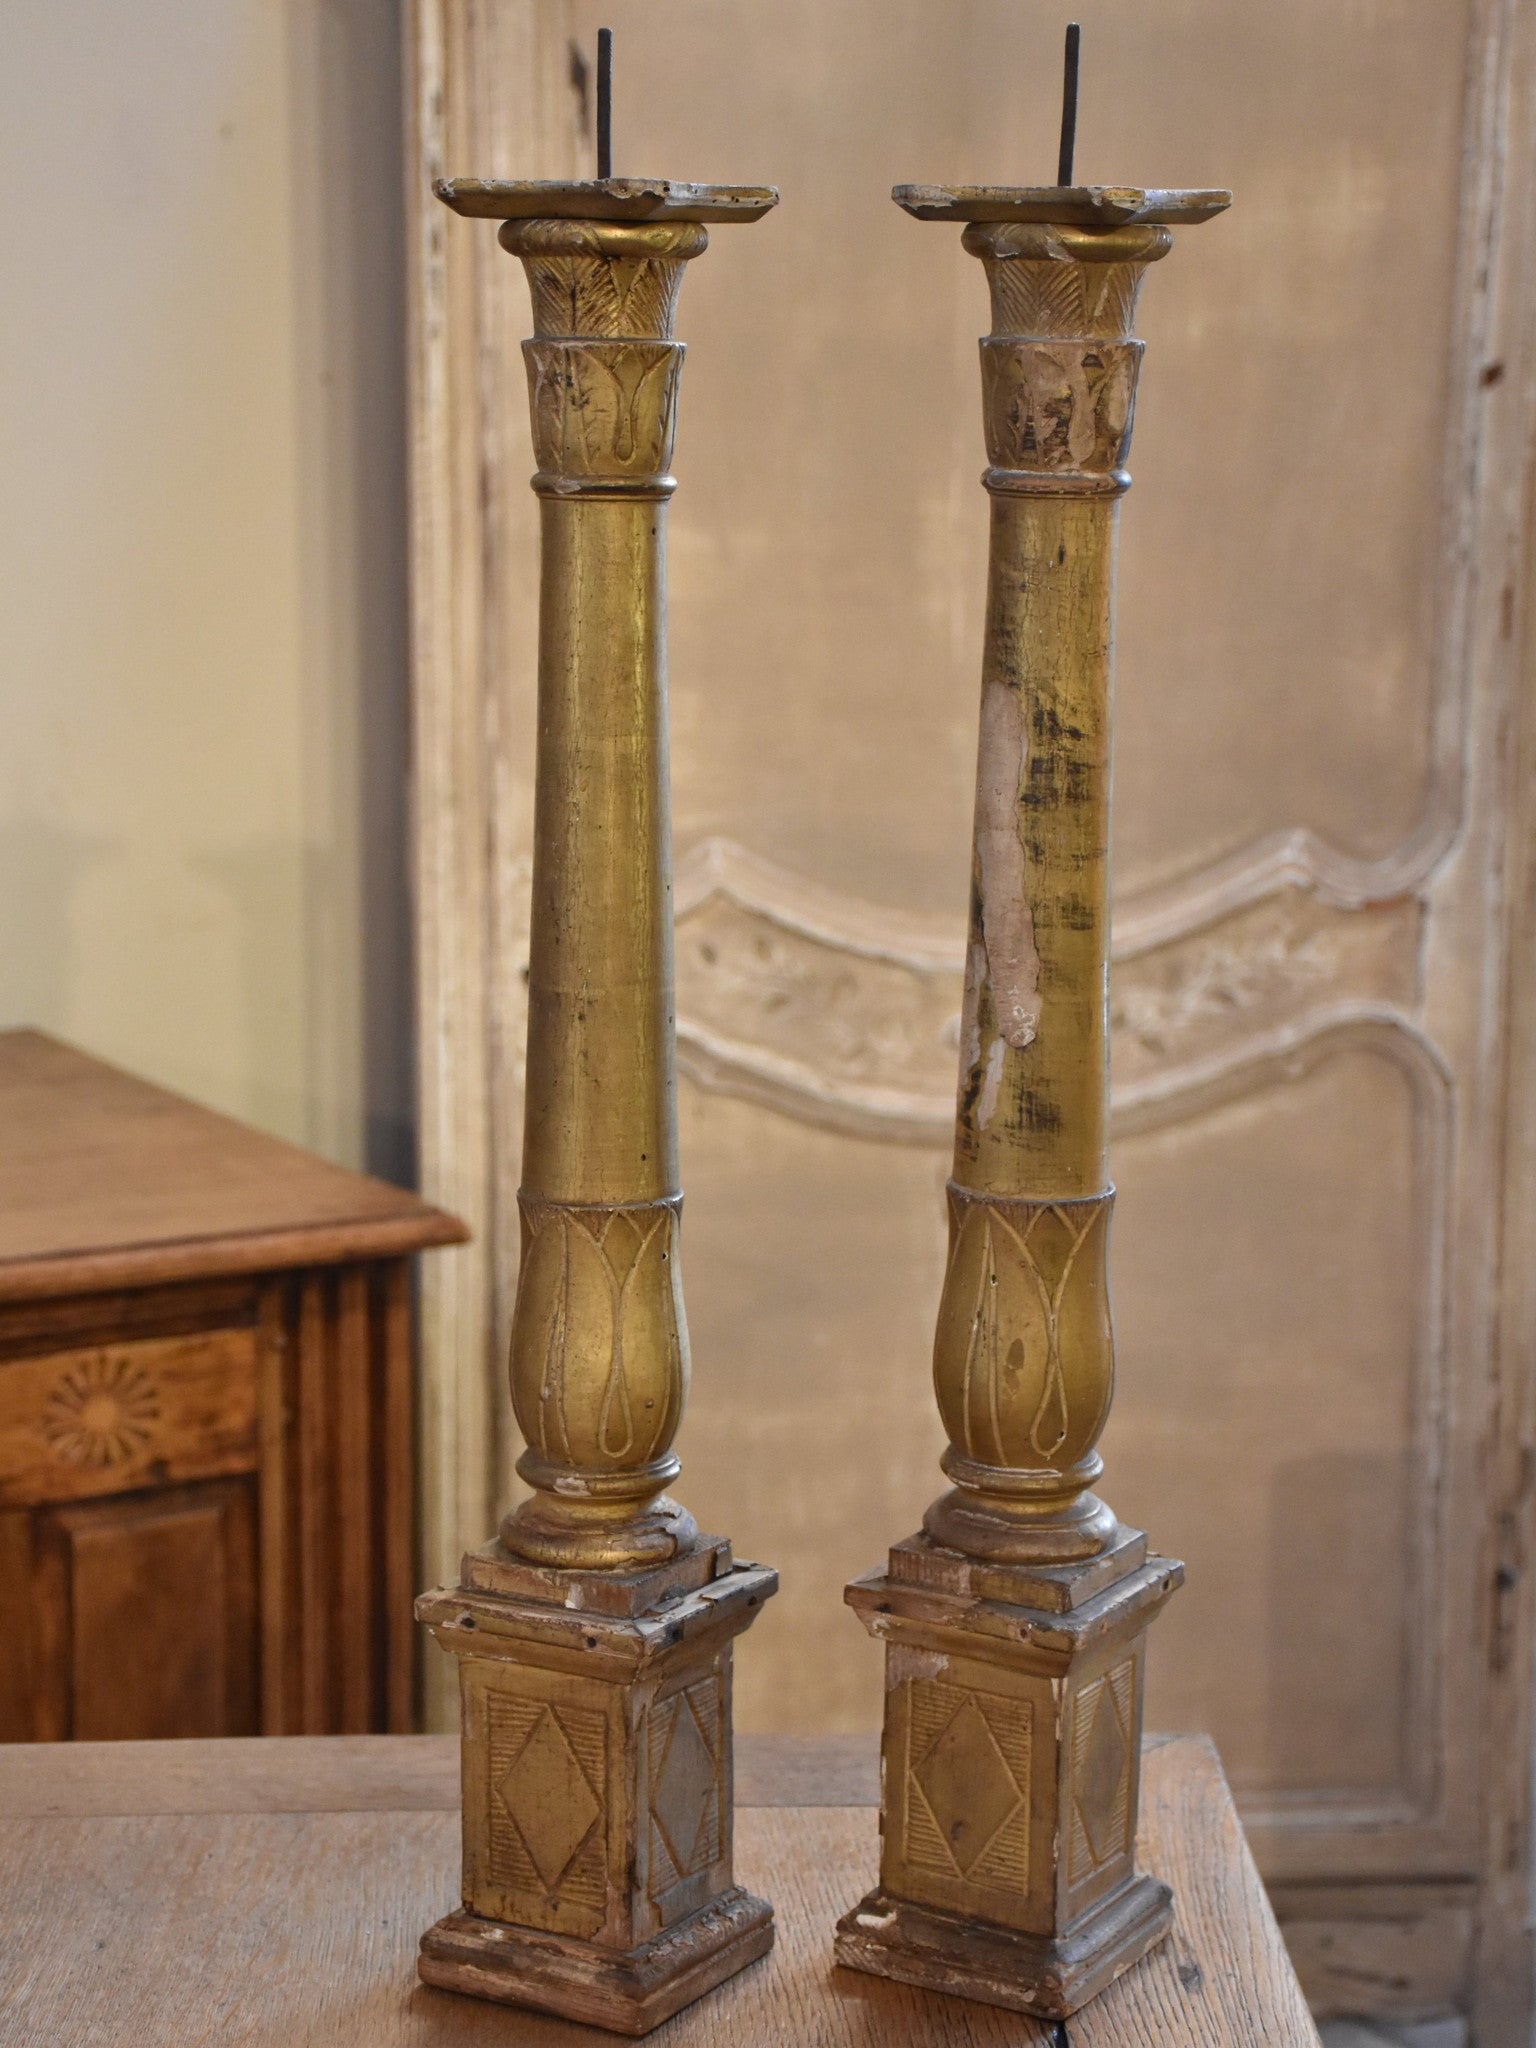 Pair of late 18th century French giltwood candlesticks